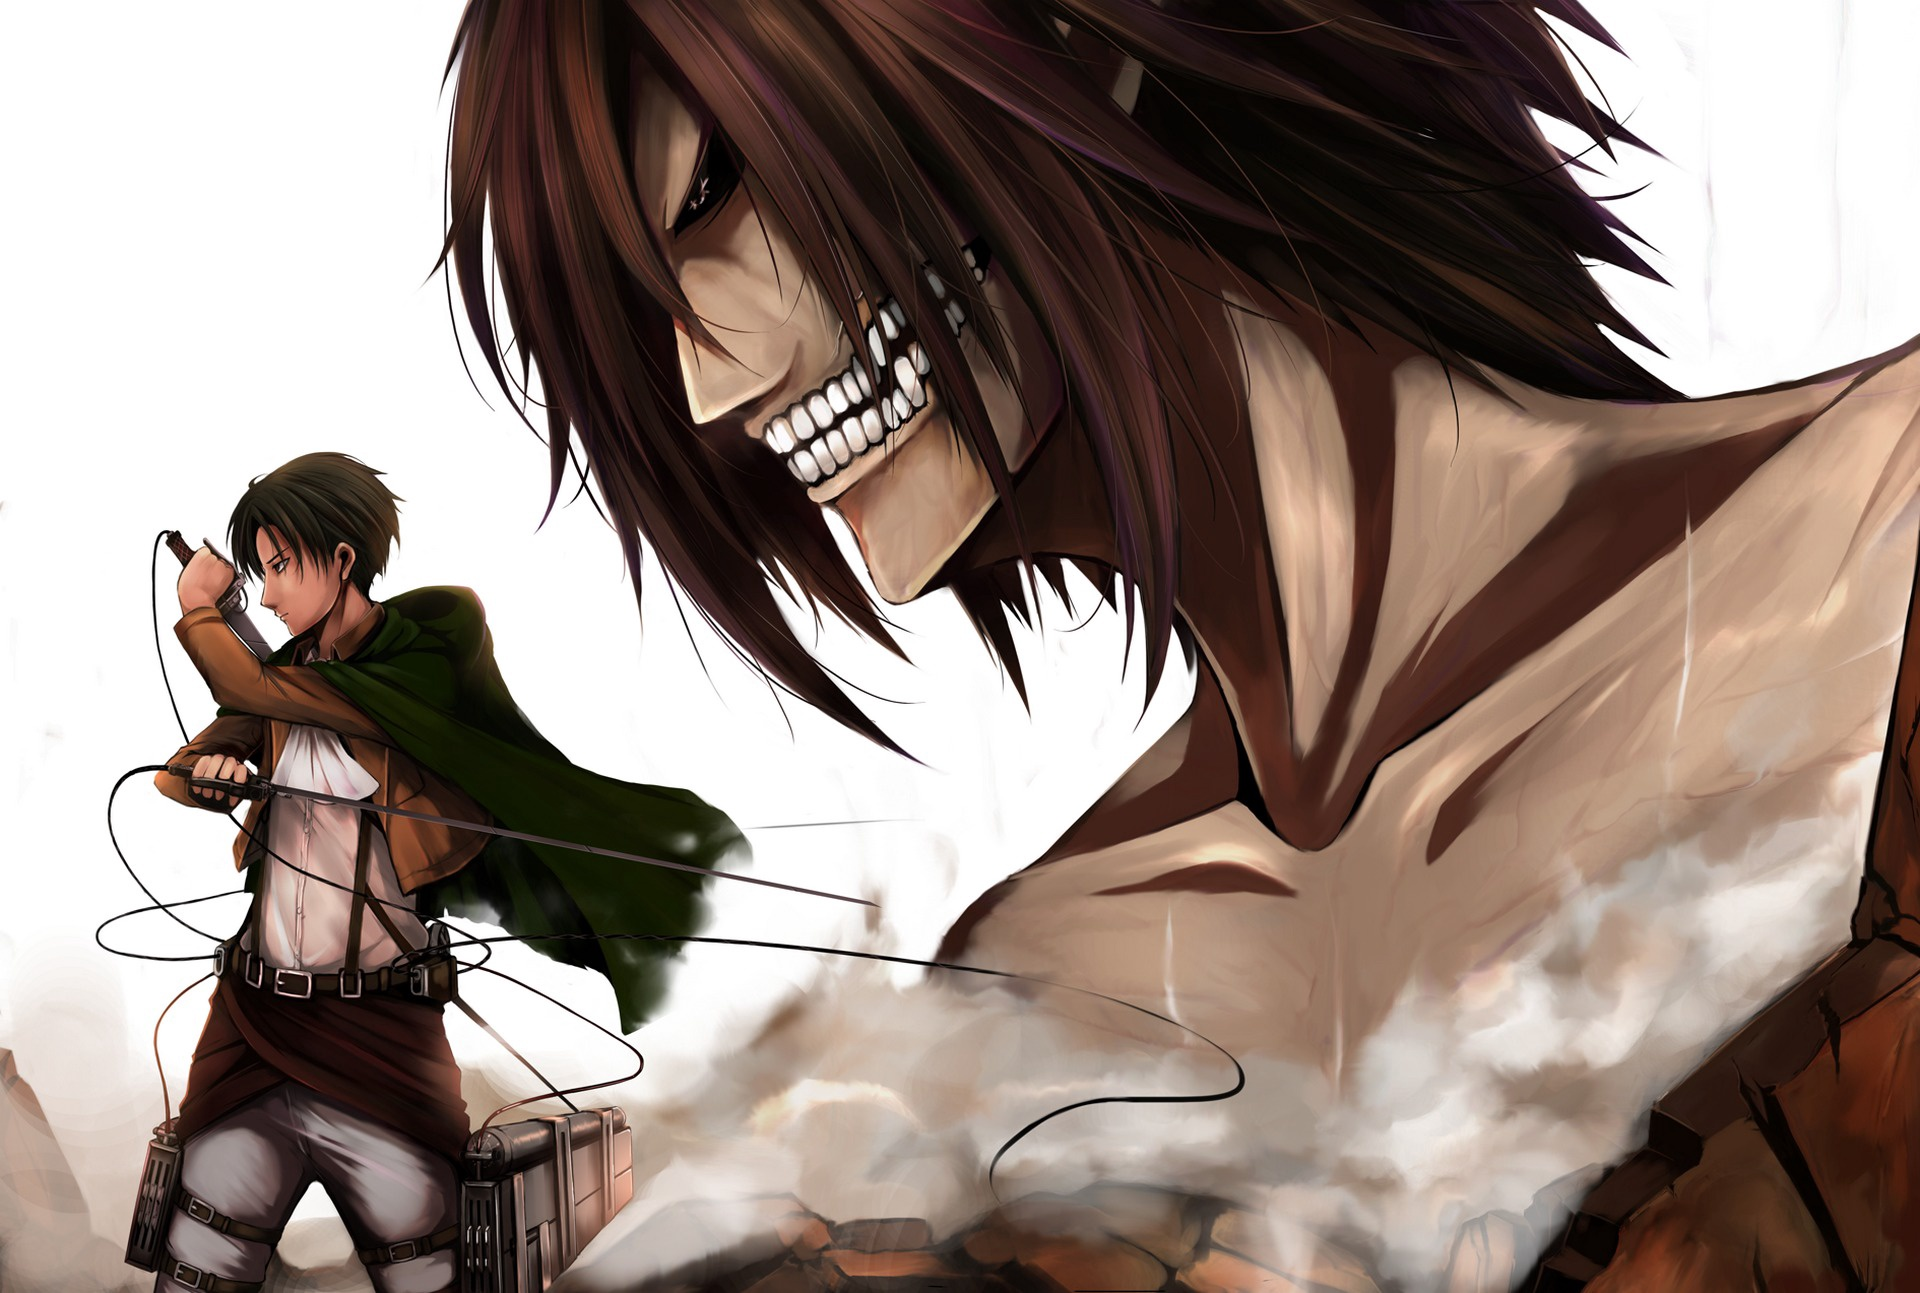 Download Wallpaper From Anime Attack On Titan With Tags Windows Vista Eren Yeager Levi Ackerman